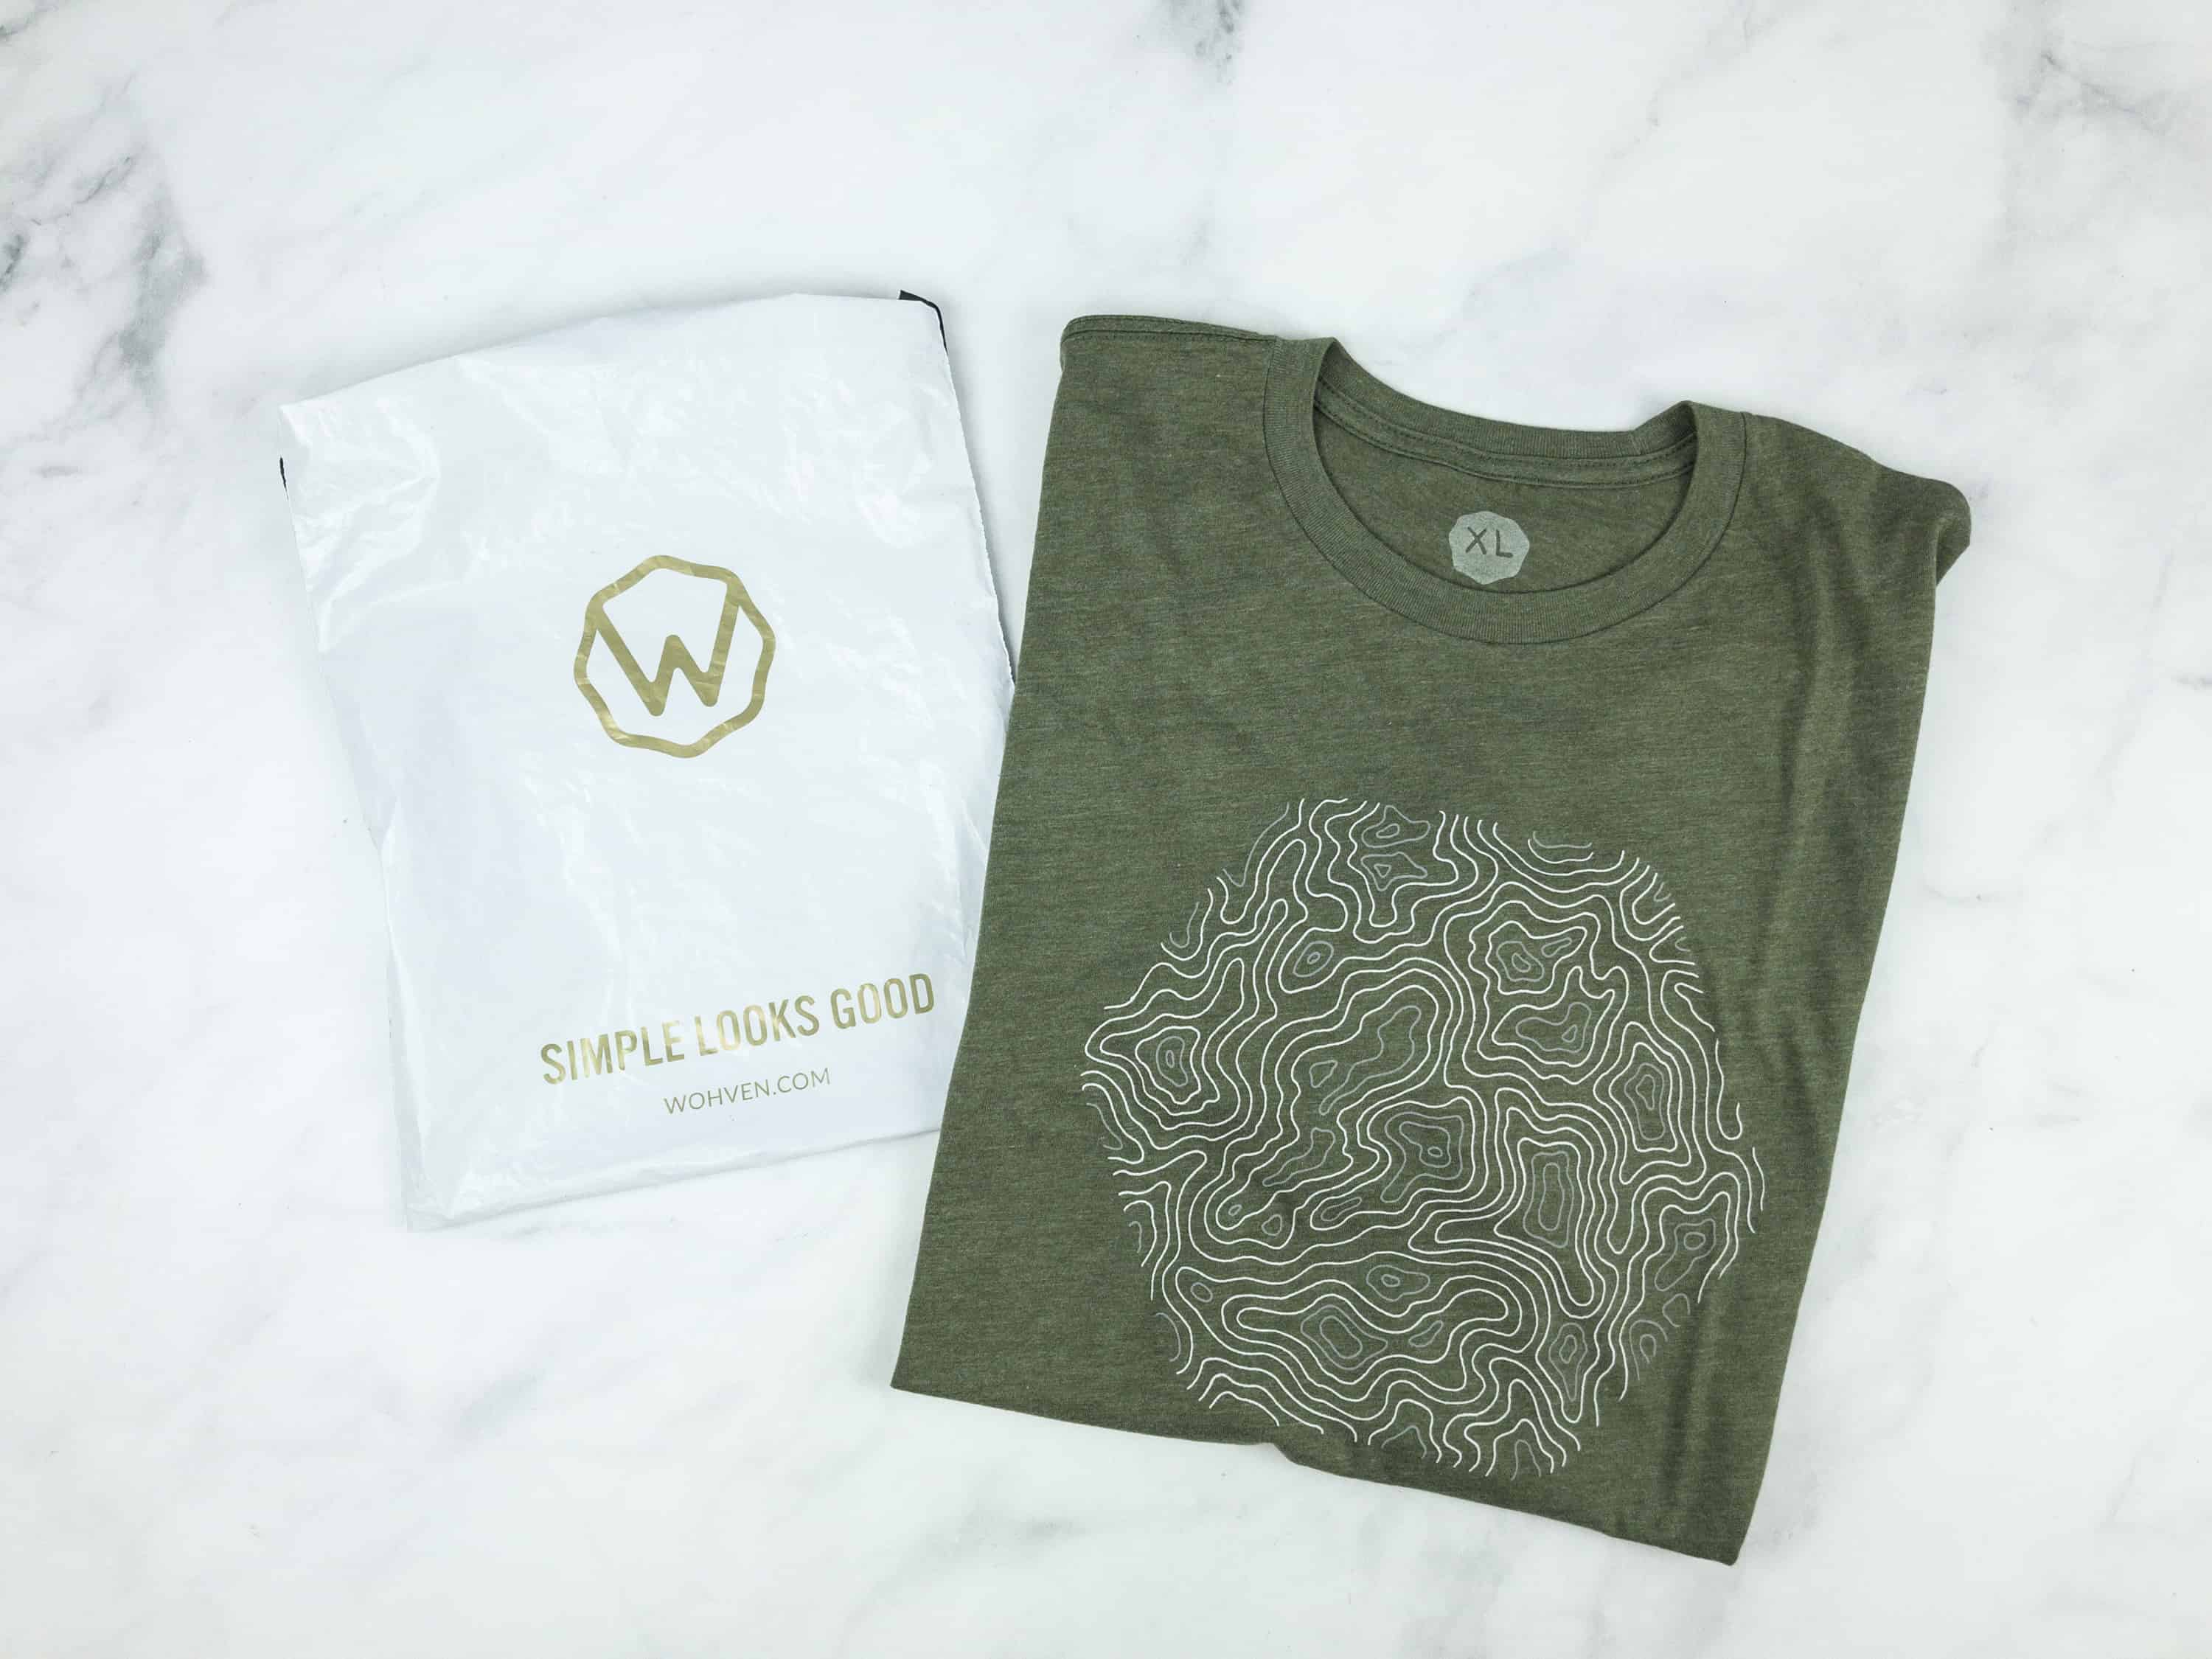 Wohven T-Shirt Subscription Review – October 2018